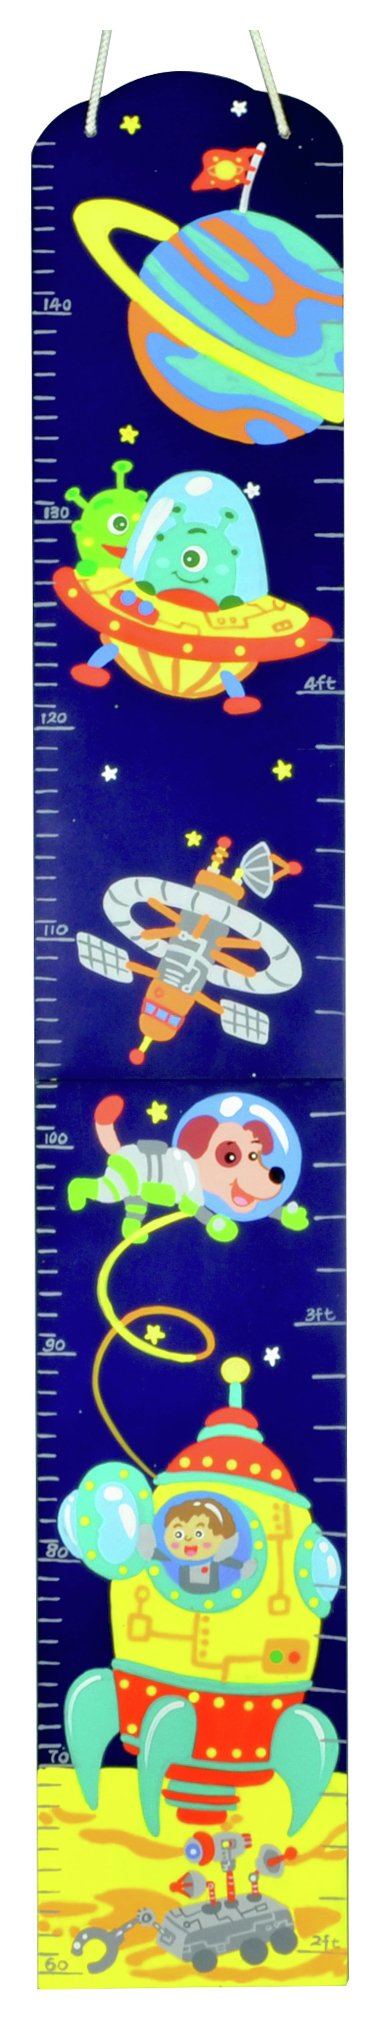 Image of Fantasy Fields Outer Space Growth Chart.